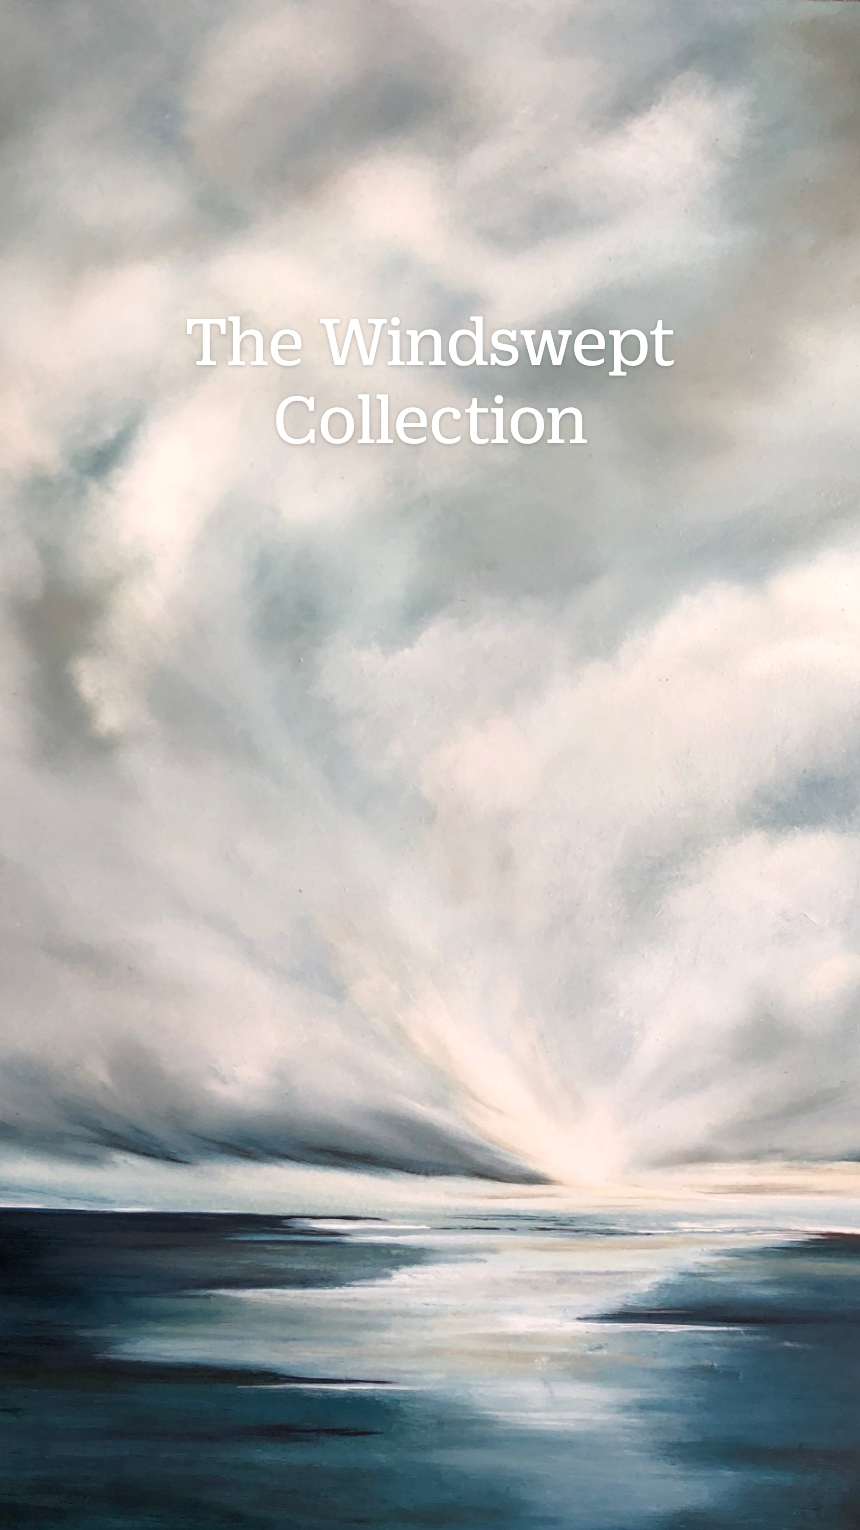 The Windswept Collection